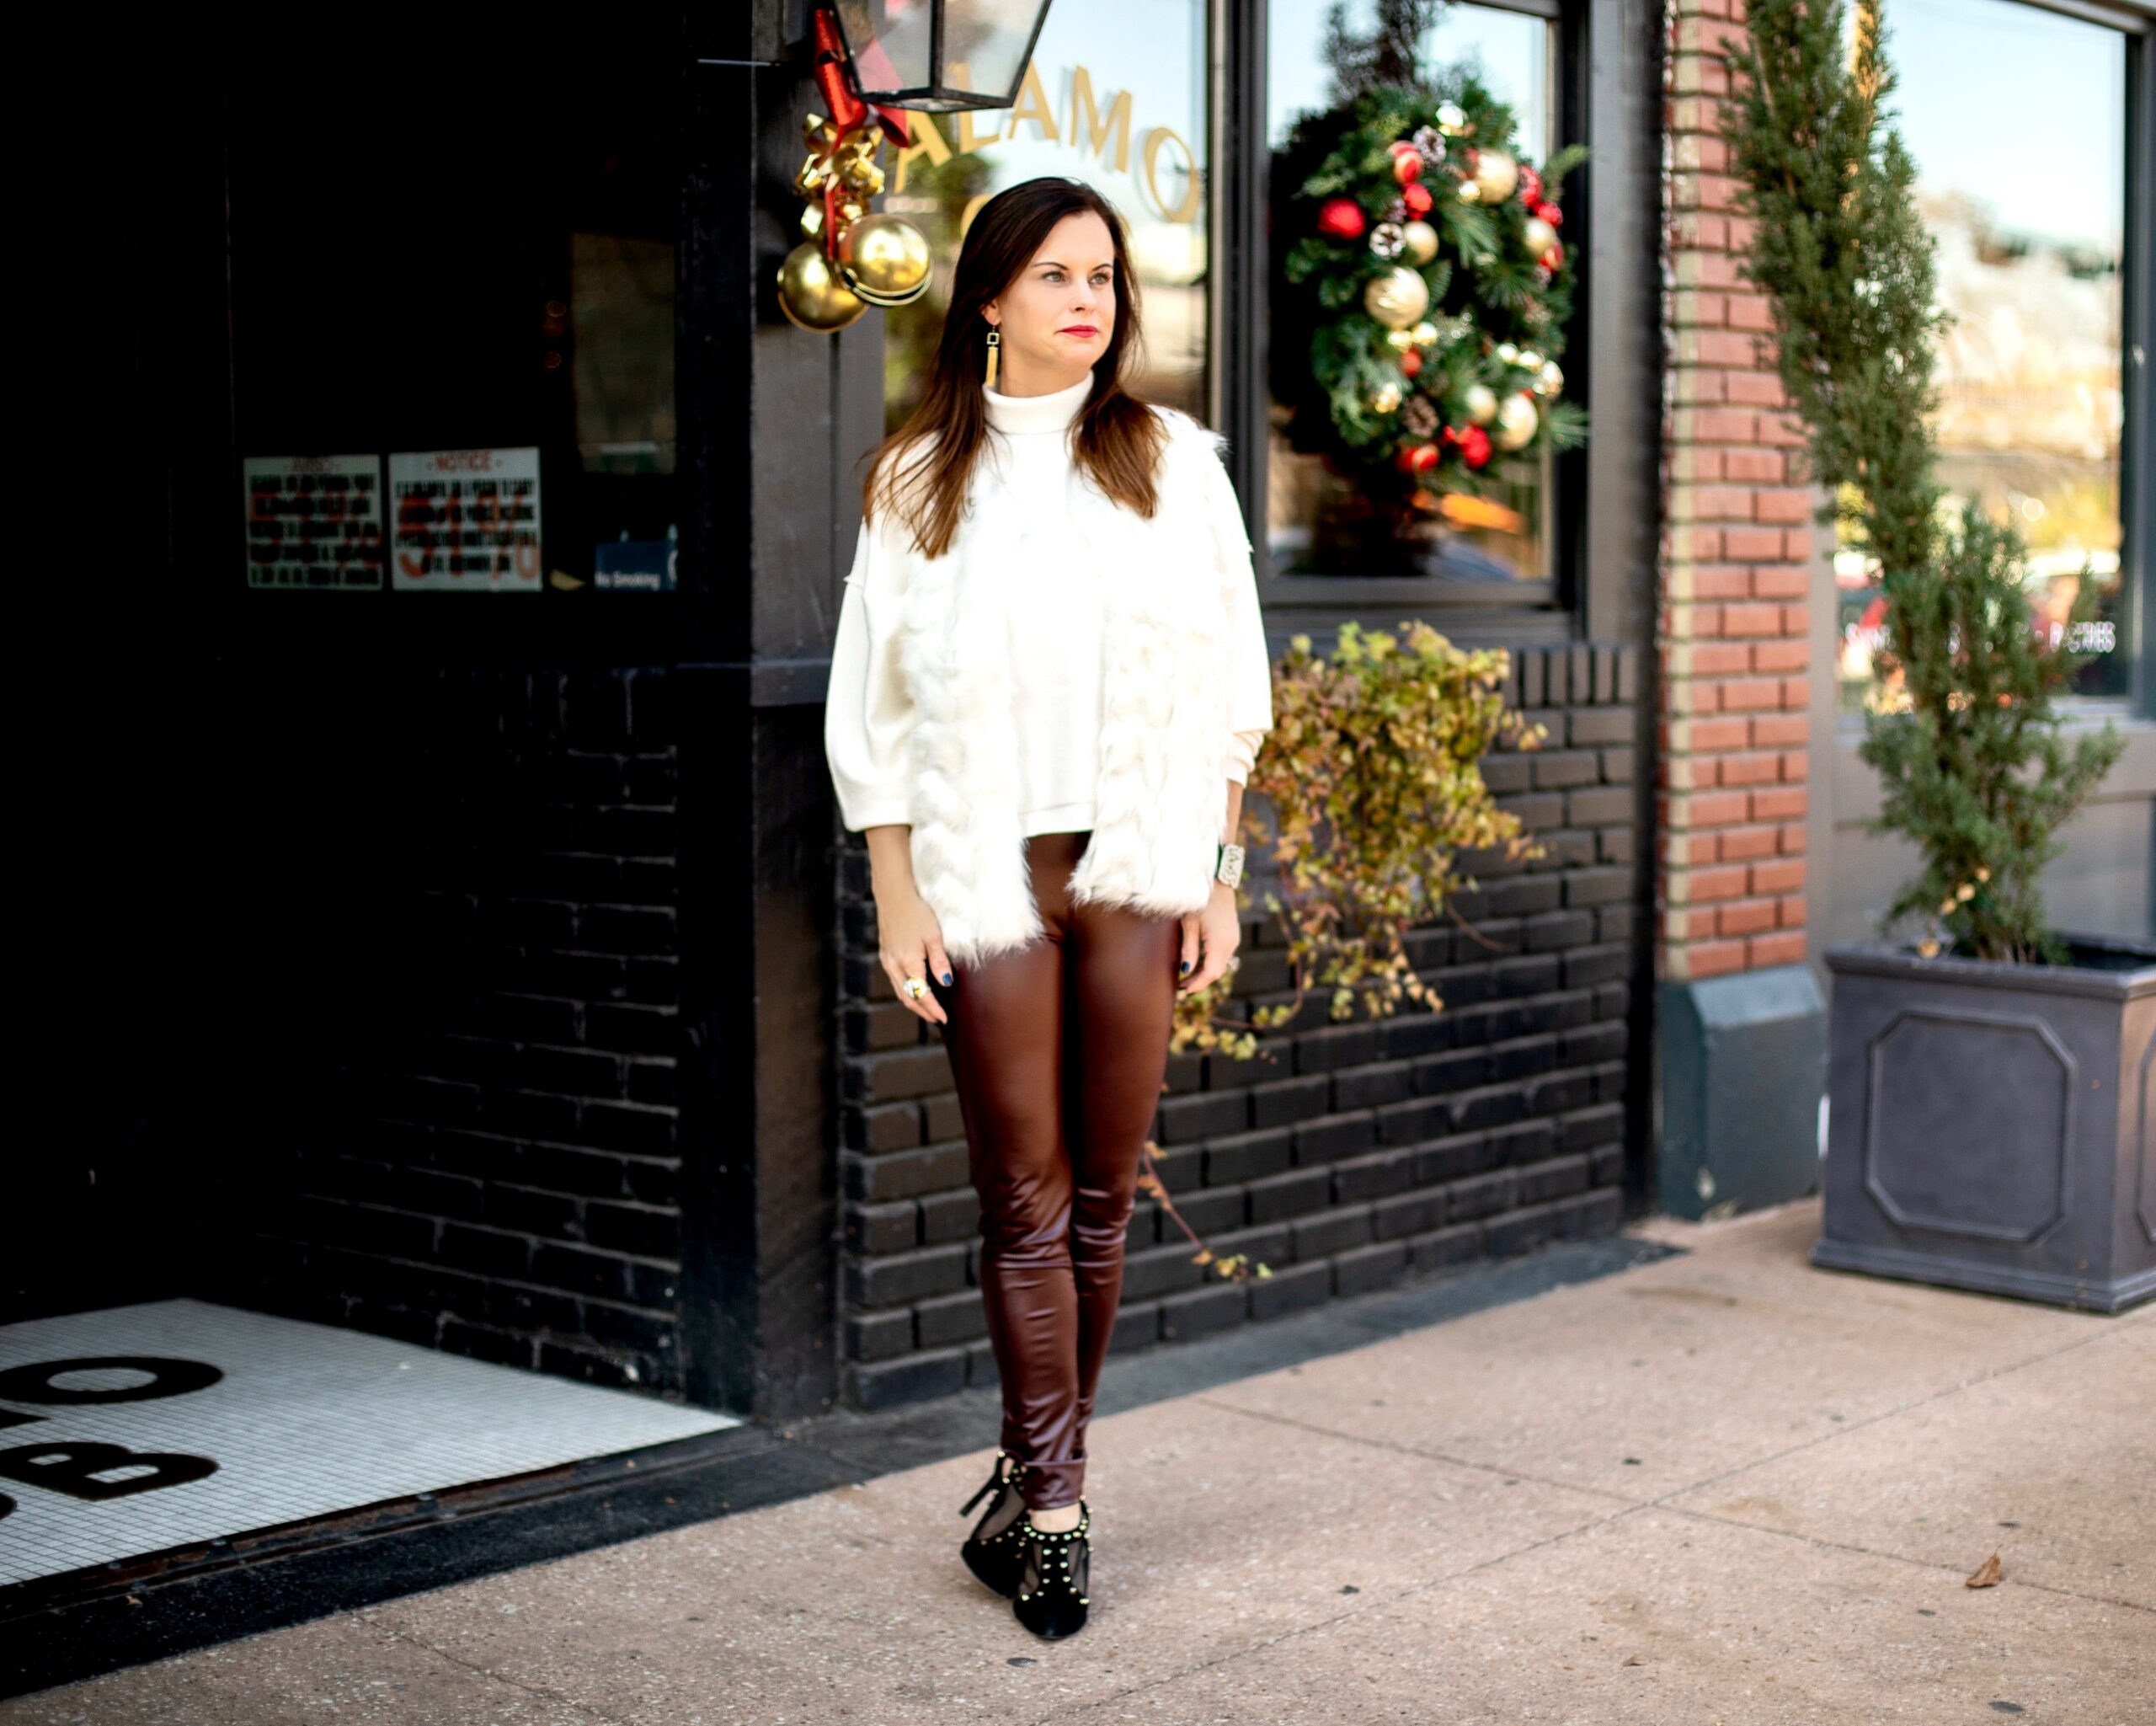 Styling Booties with Kathy Fielder Design   Life   Style